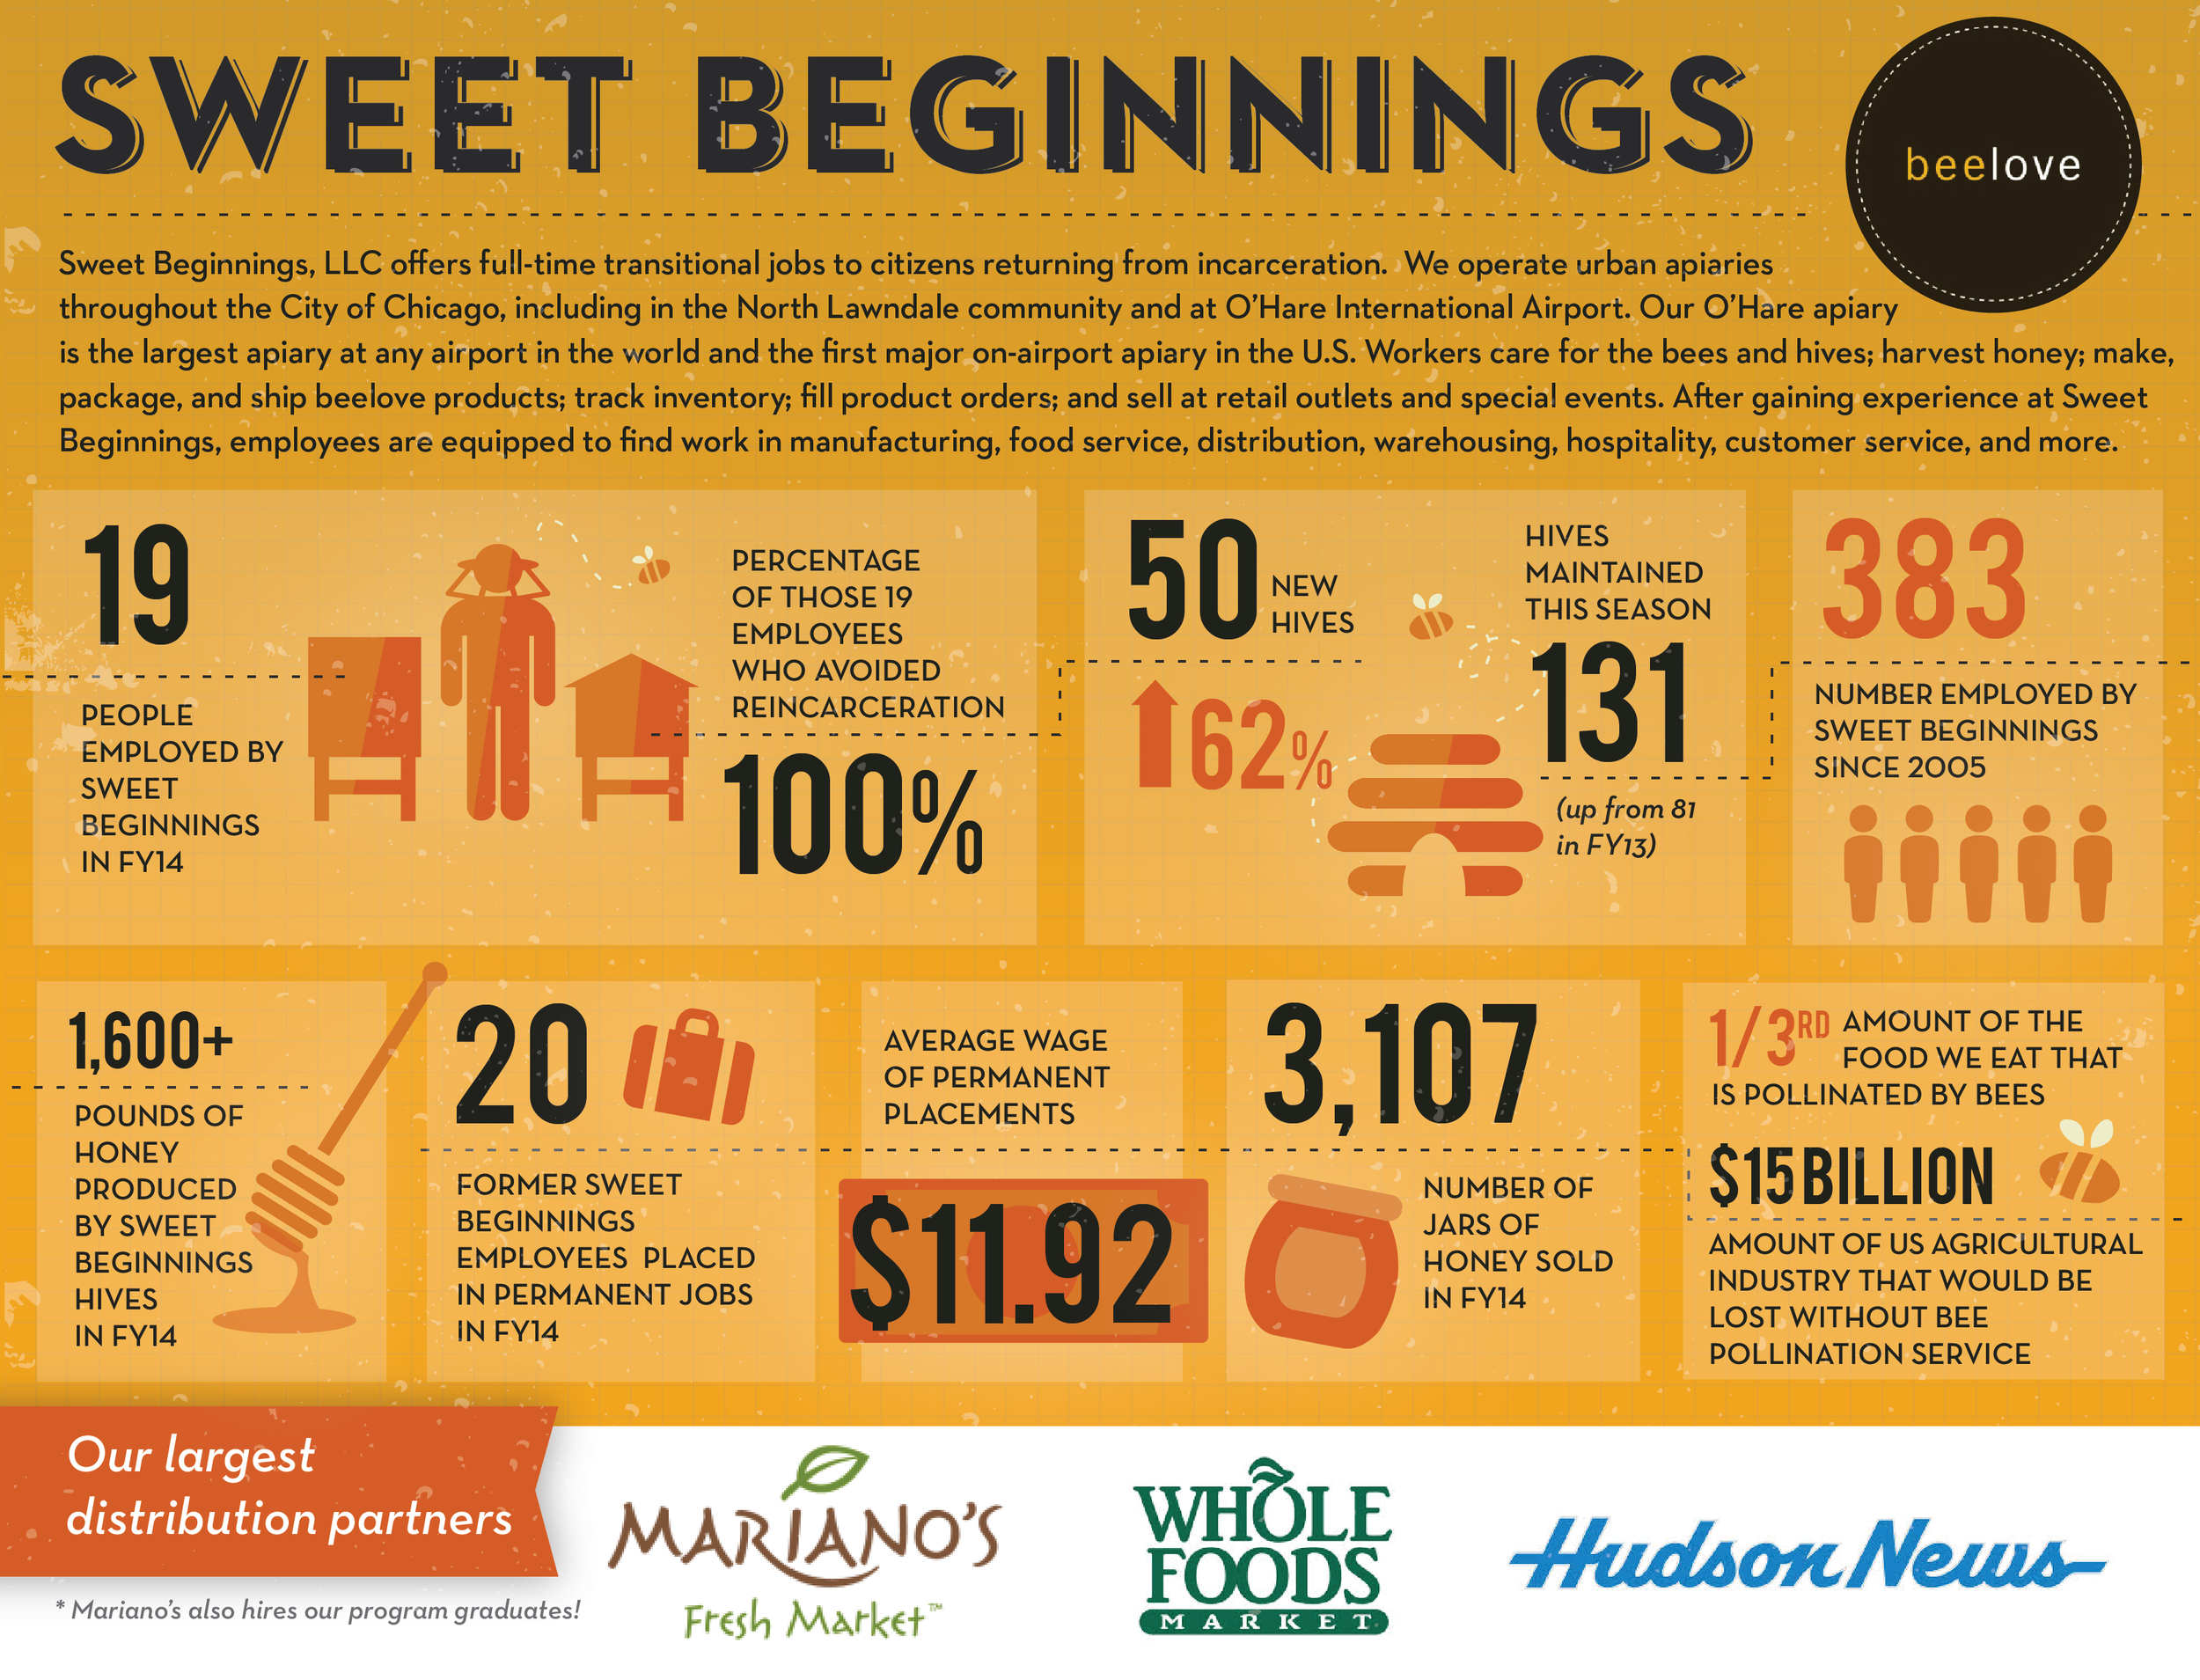 SweetBeginnings_infographic_300-01.png